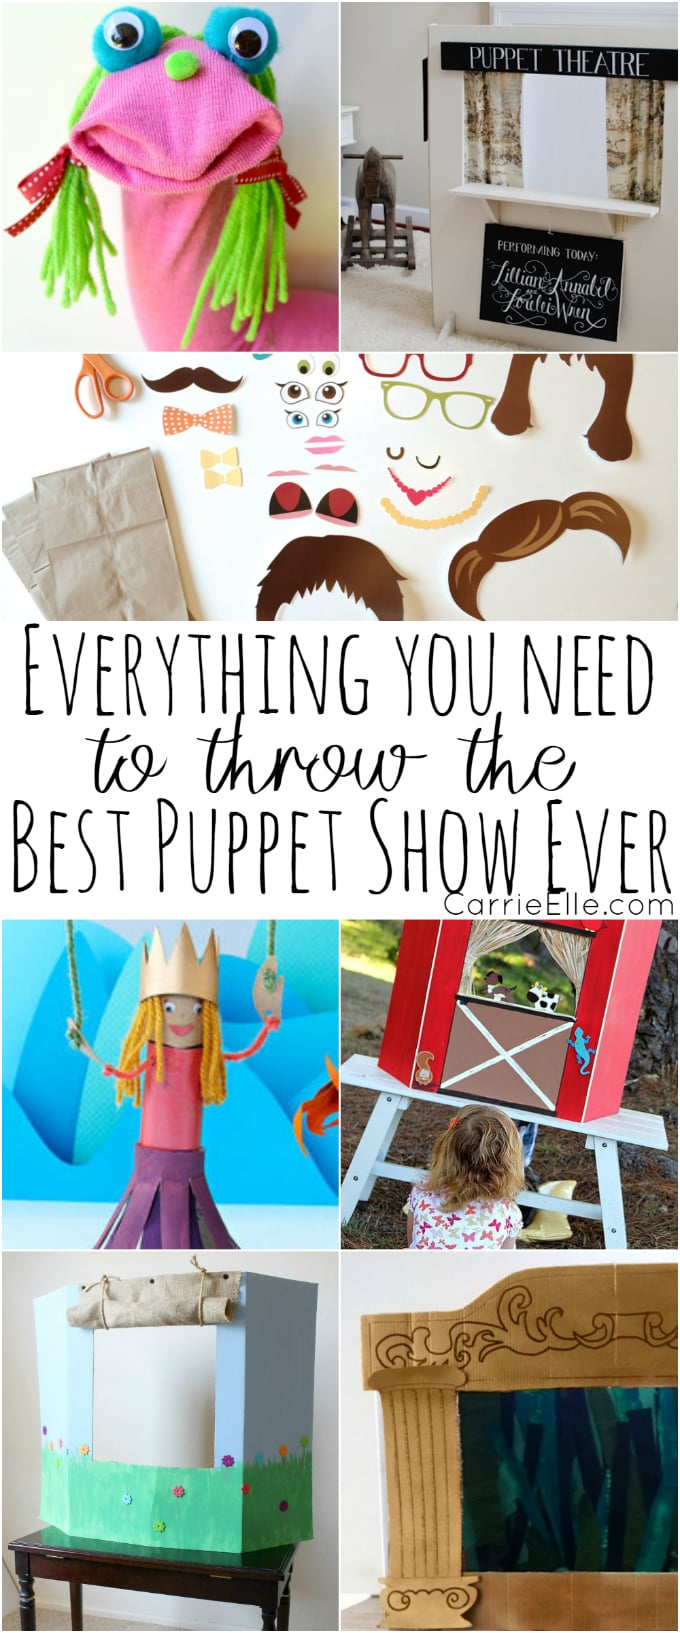 Best Puppet Show Ever